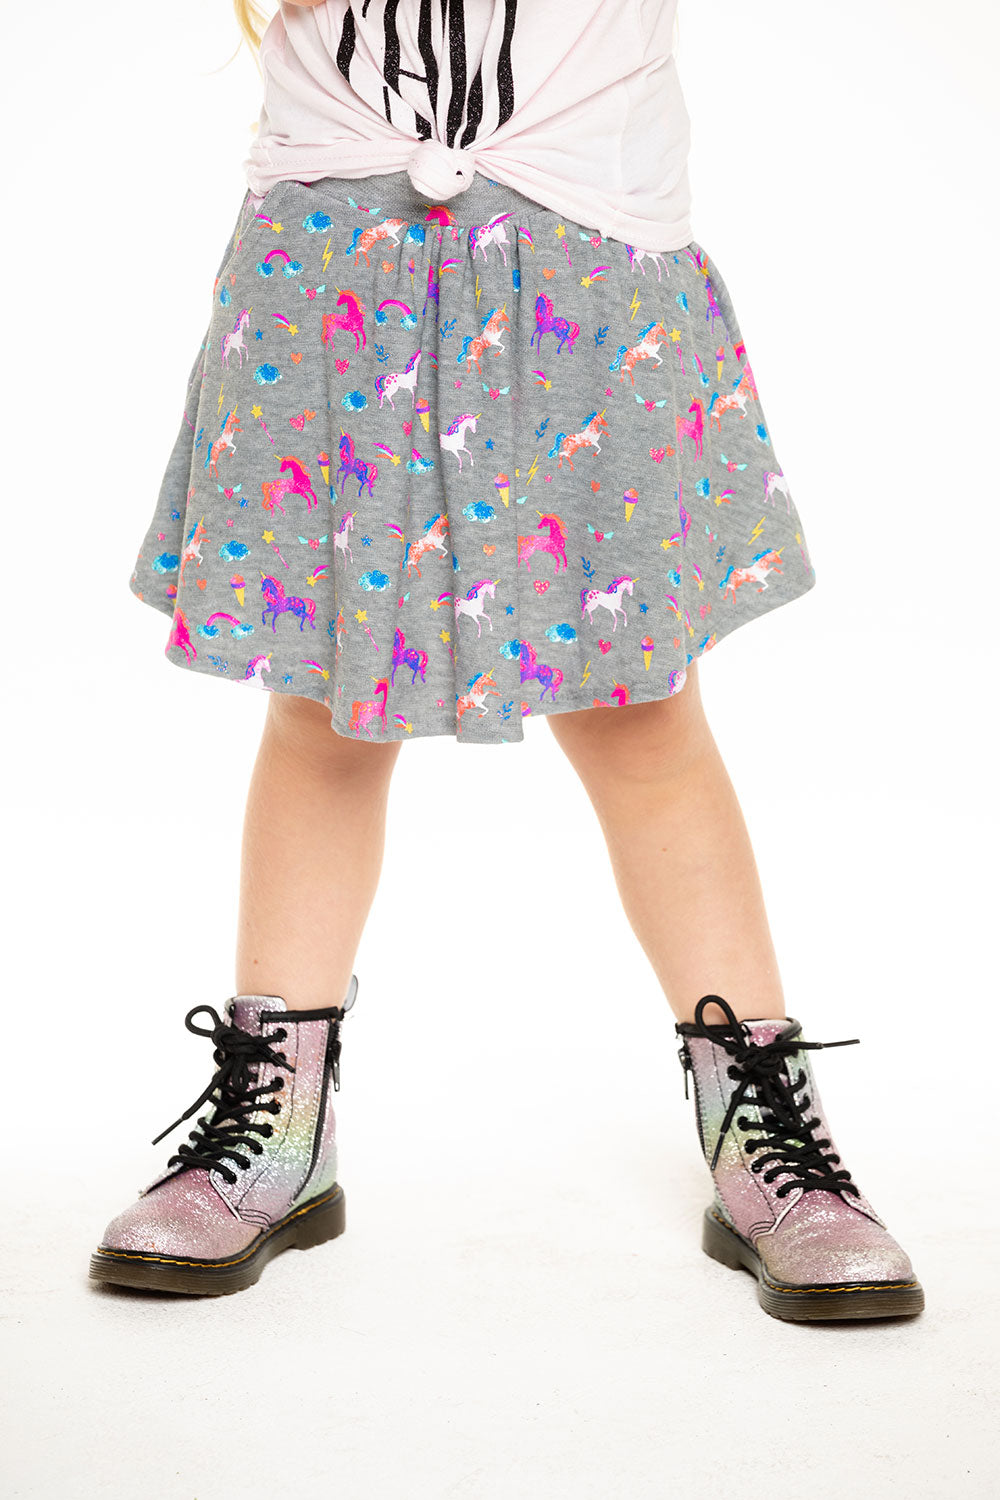 Unicorn Blessing Skirt GIRLS chaserbrand4.myshopify.com